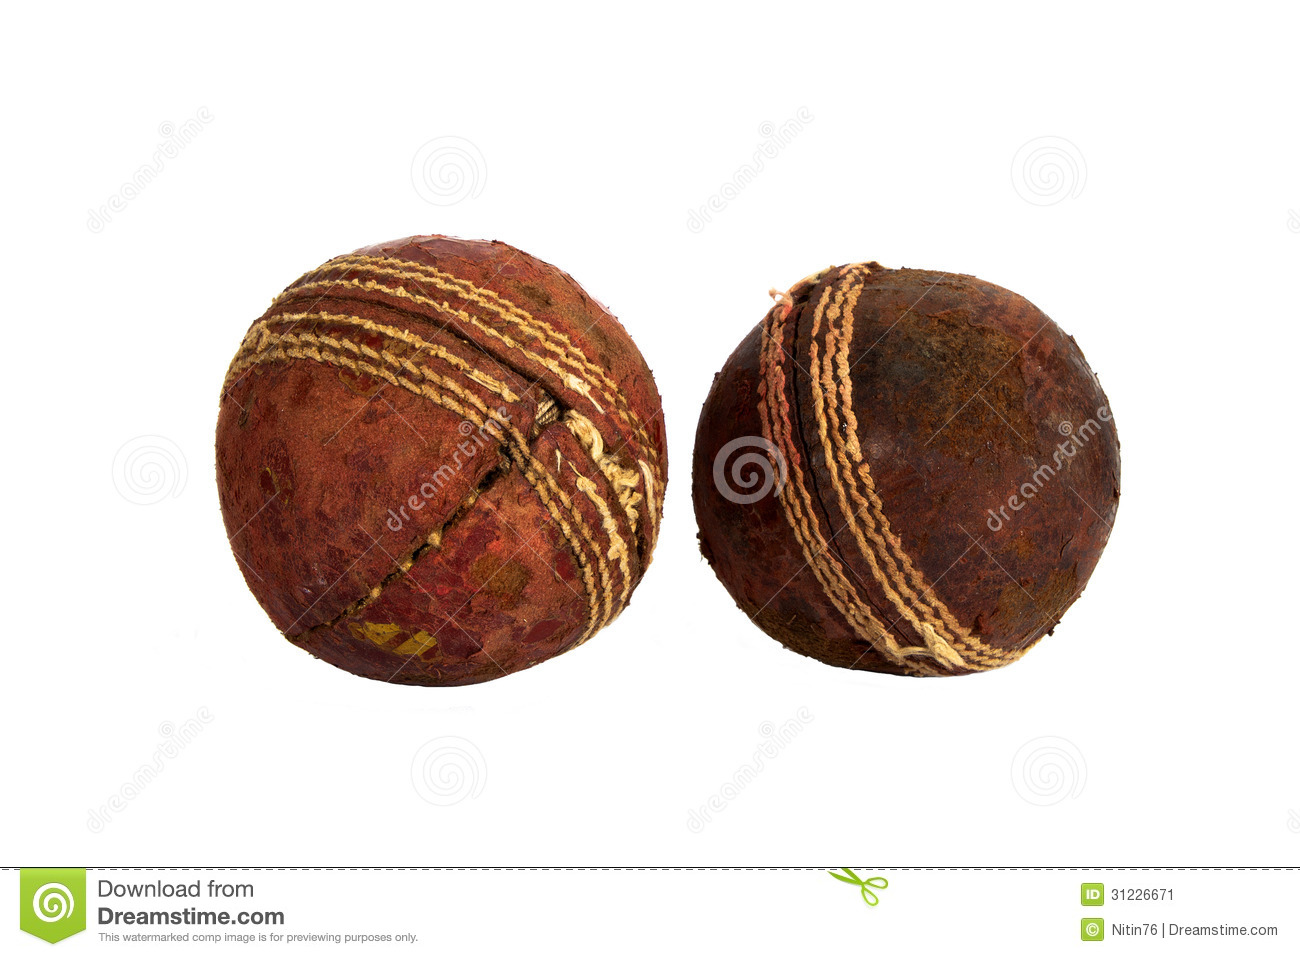 cricket ball and bat with black background